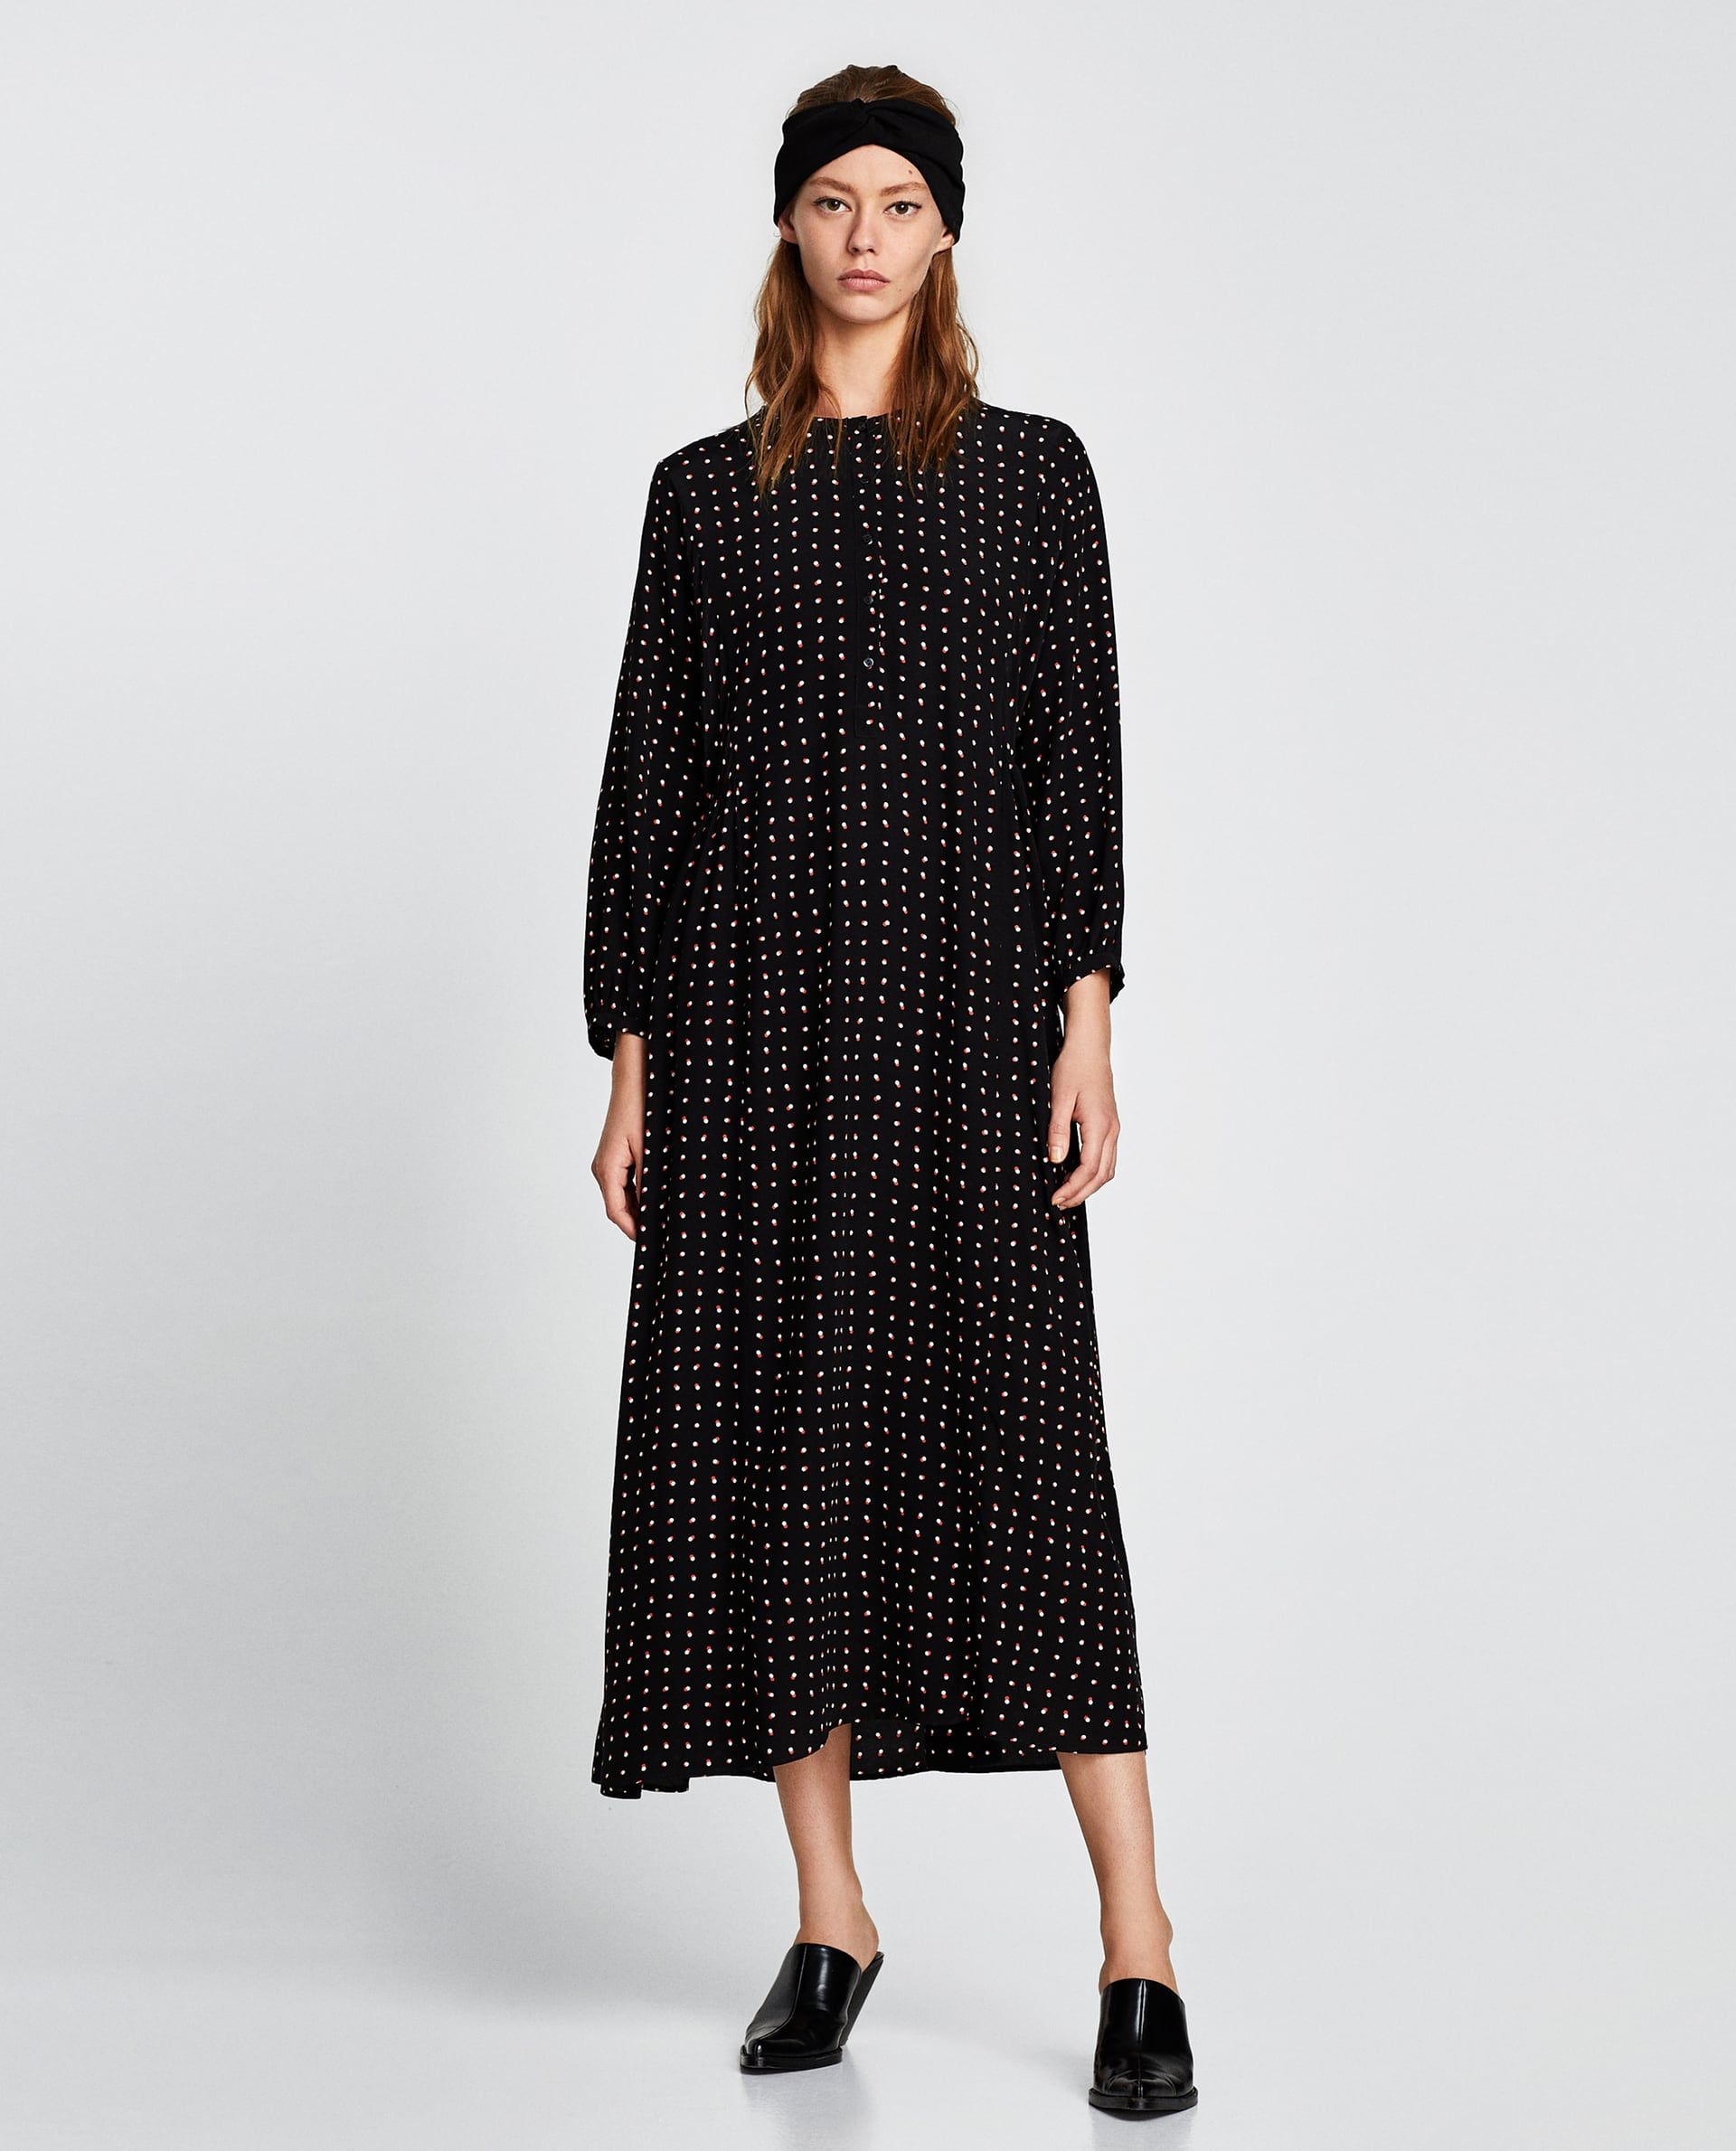 Image of long polka dot dress from zara clothes pinterest